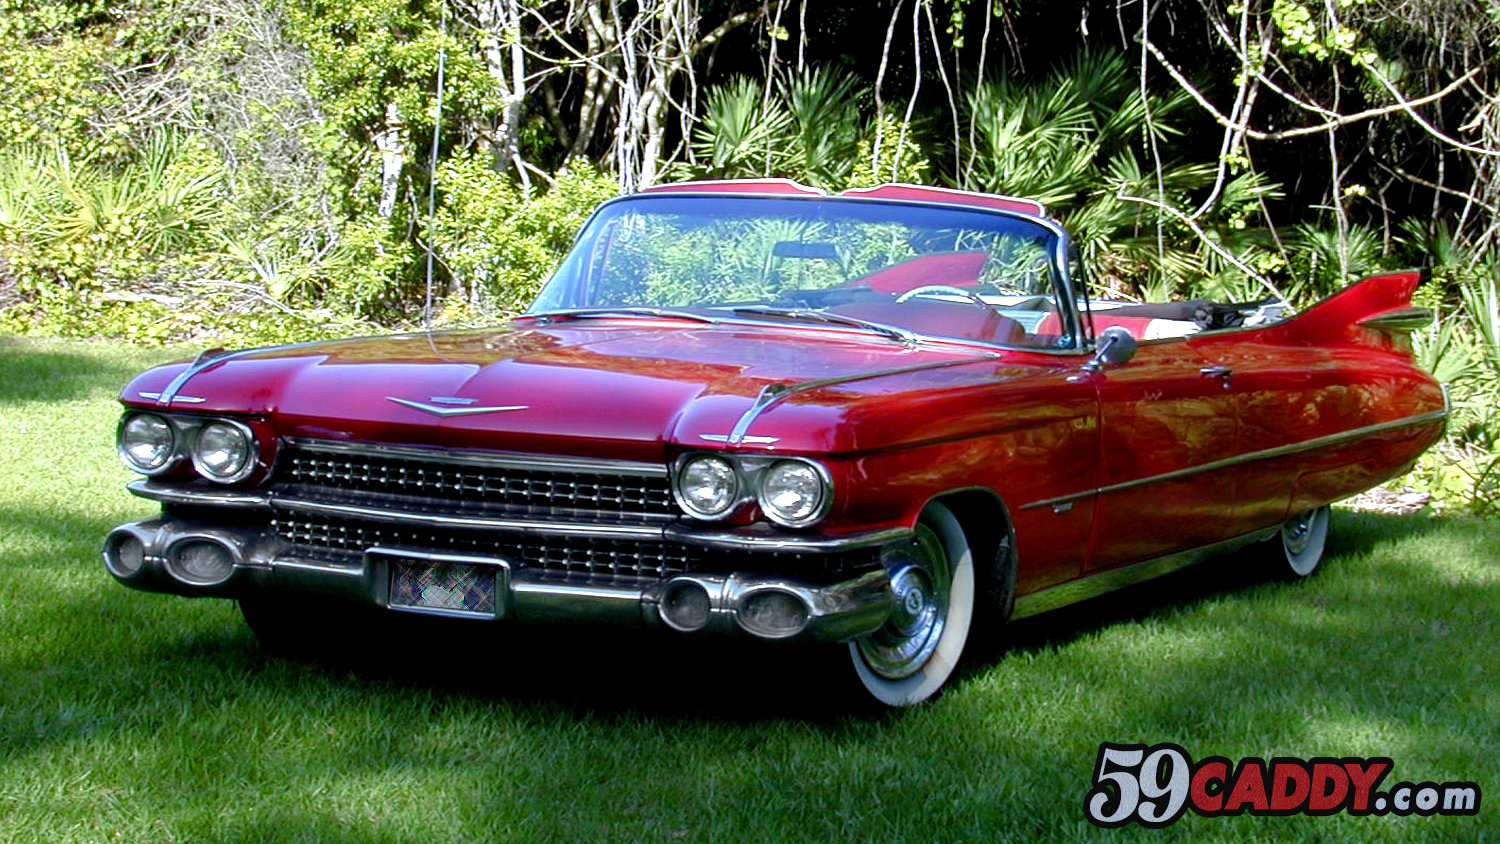 Red 1959 Cadillac Convertible